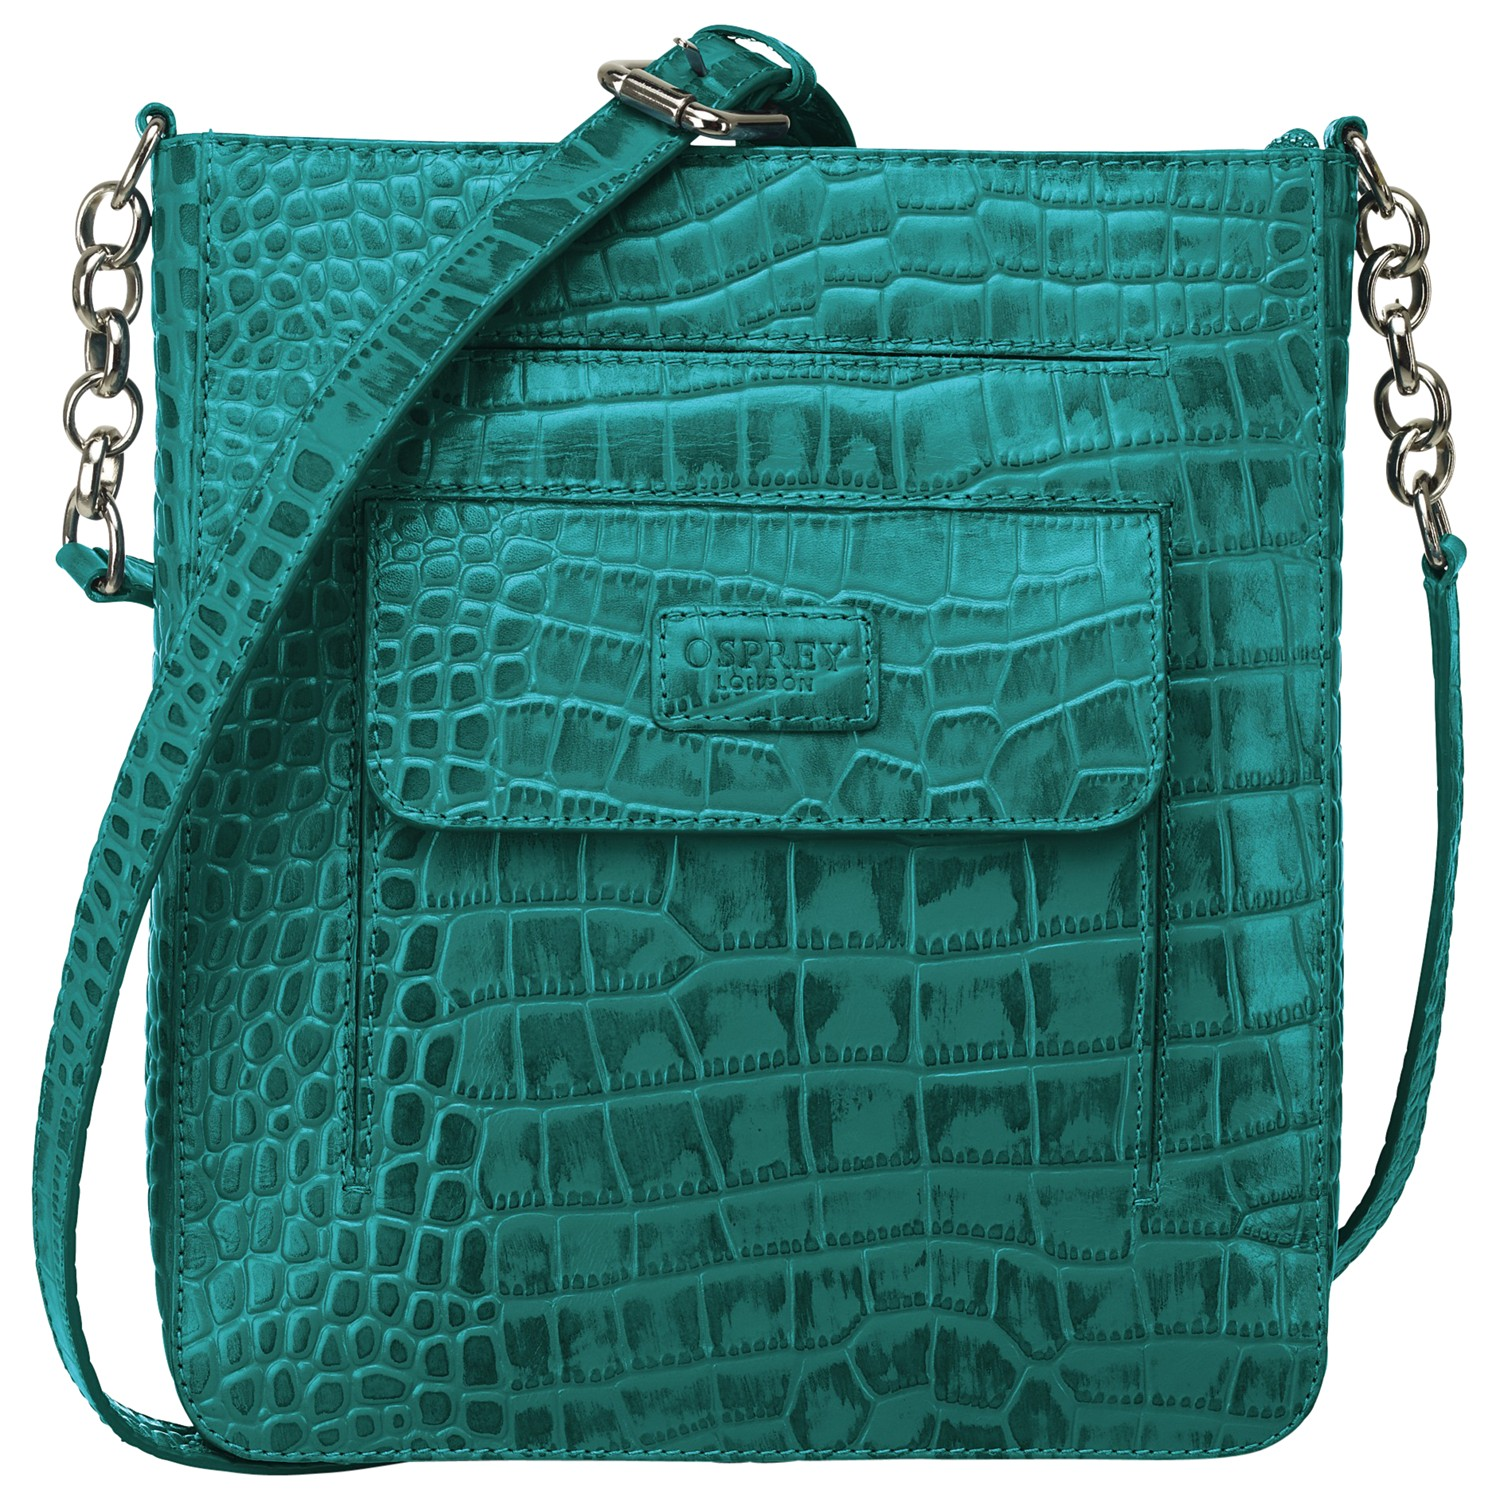 Osprey London The Carapace Across Body Handbag in Green (Teal)